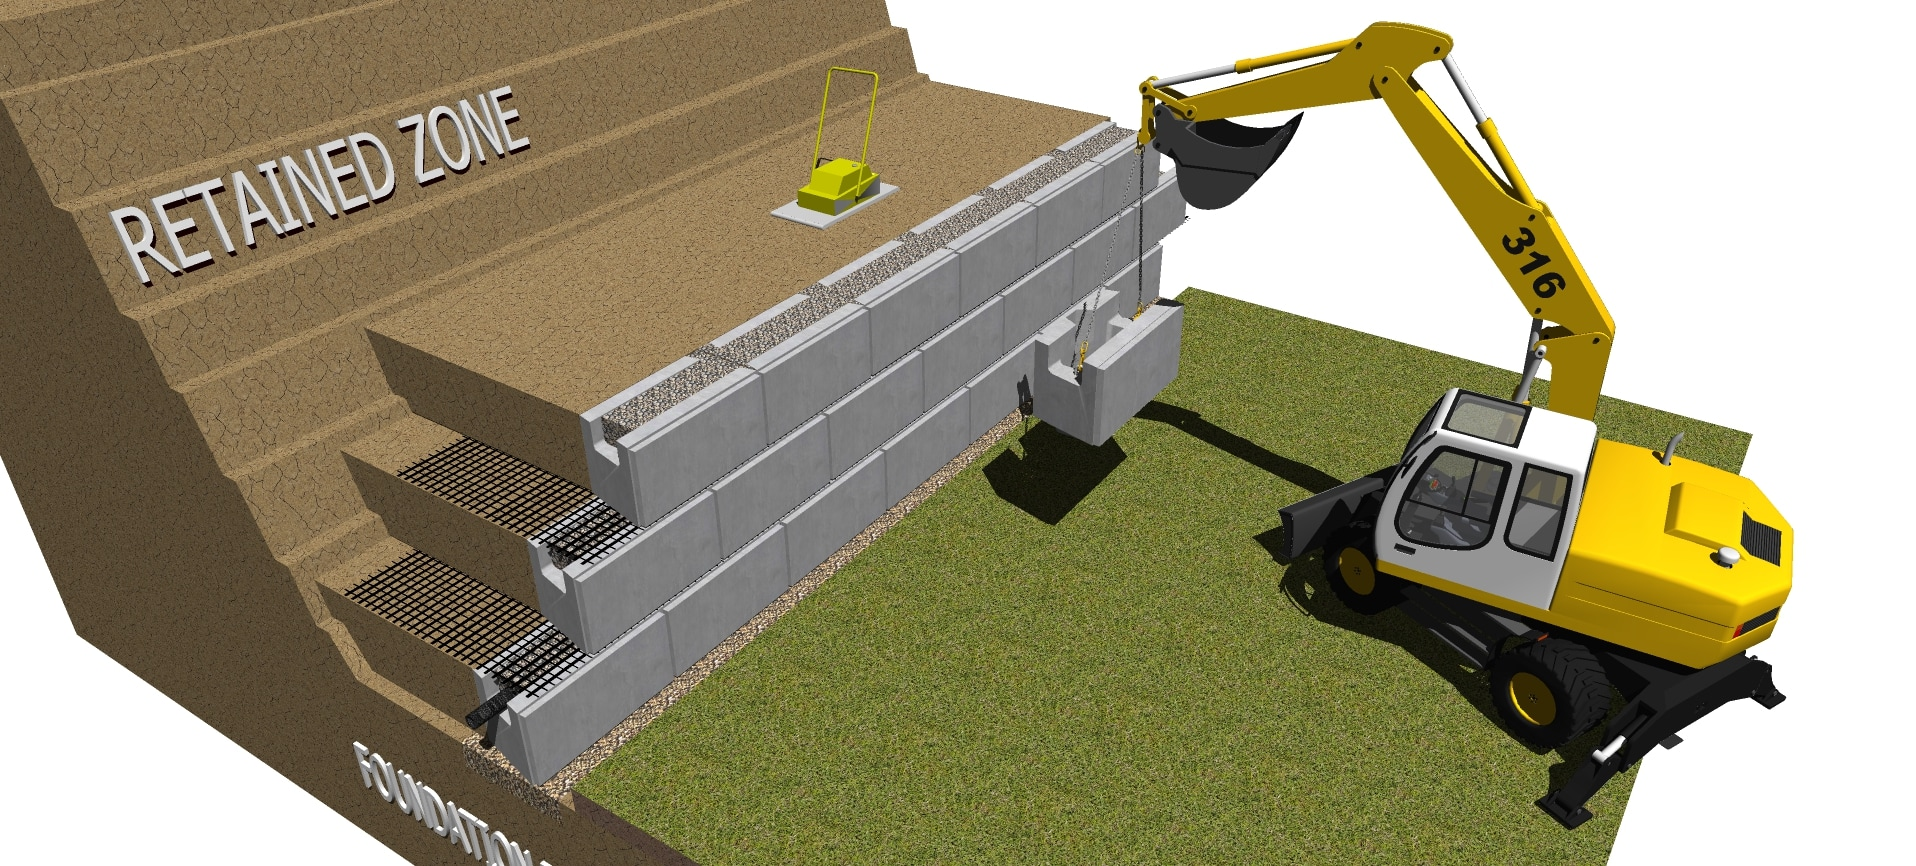 third row compaction for geogrid retaining wall